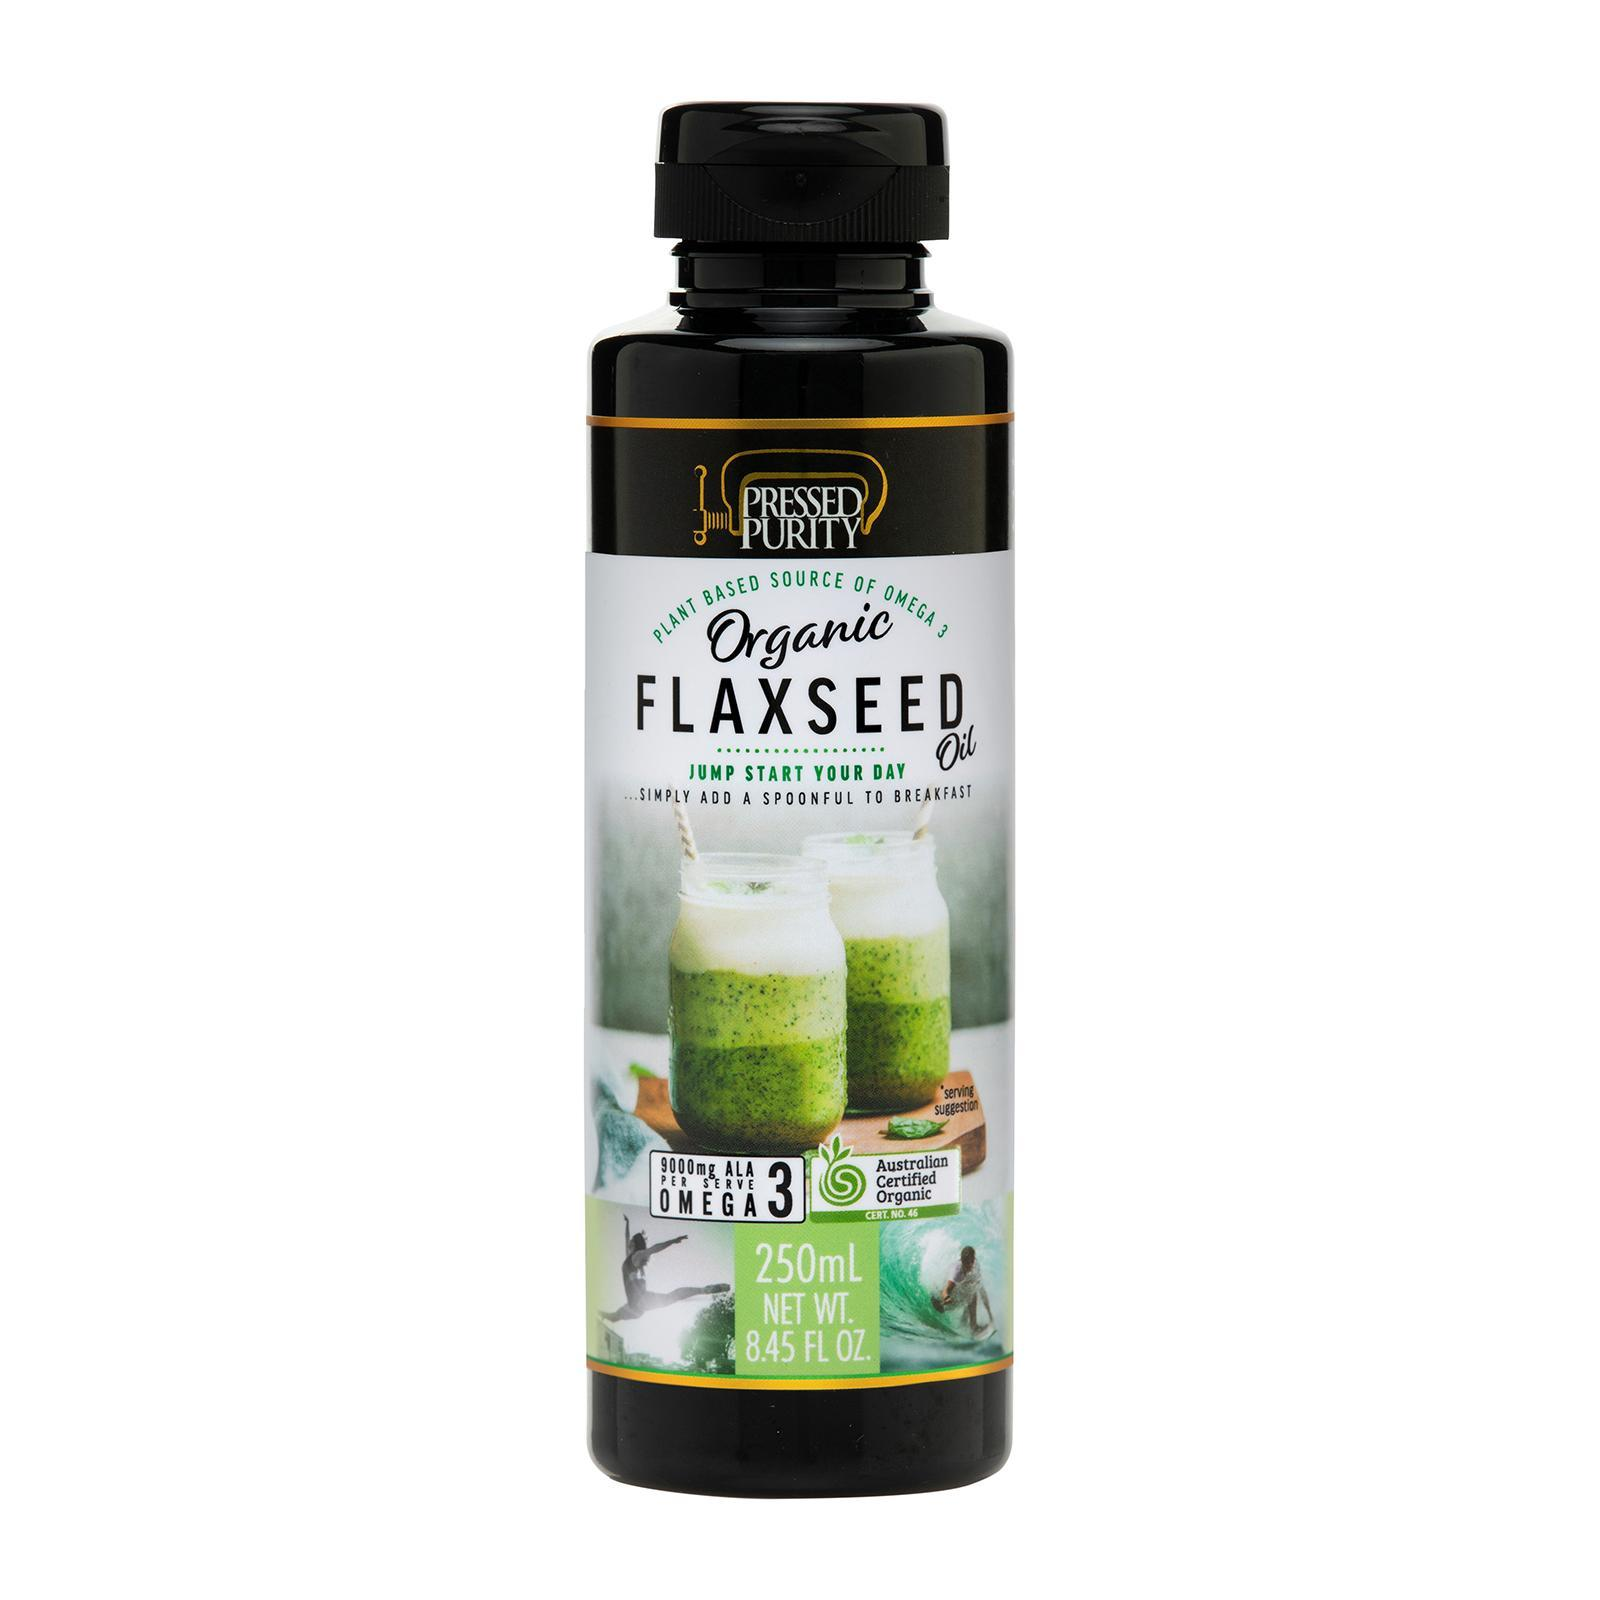 Pressed Purity Unrefined Extra Virgin Organic Flaxseed Oil